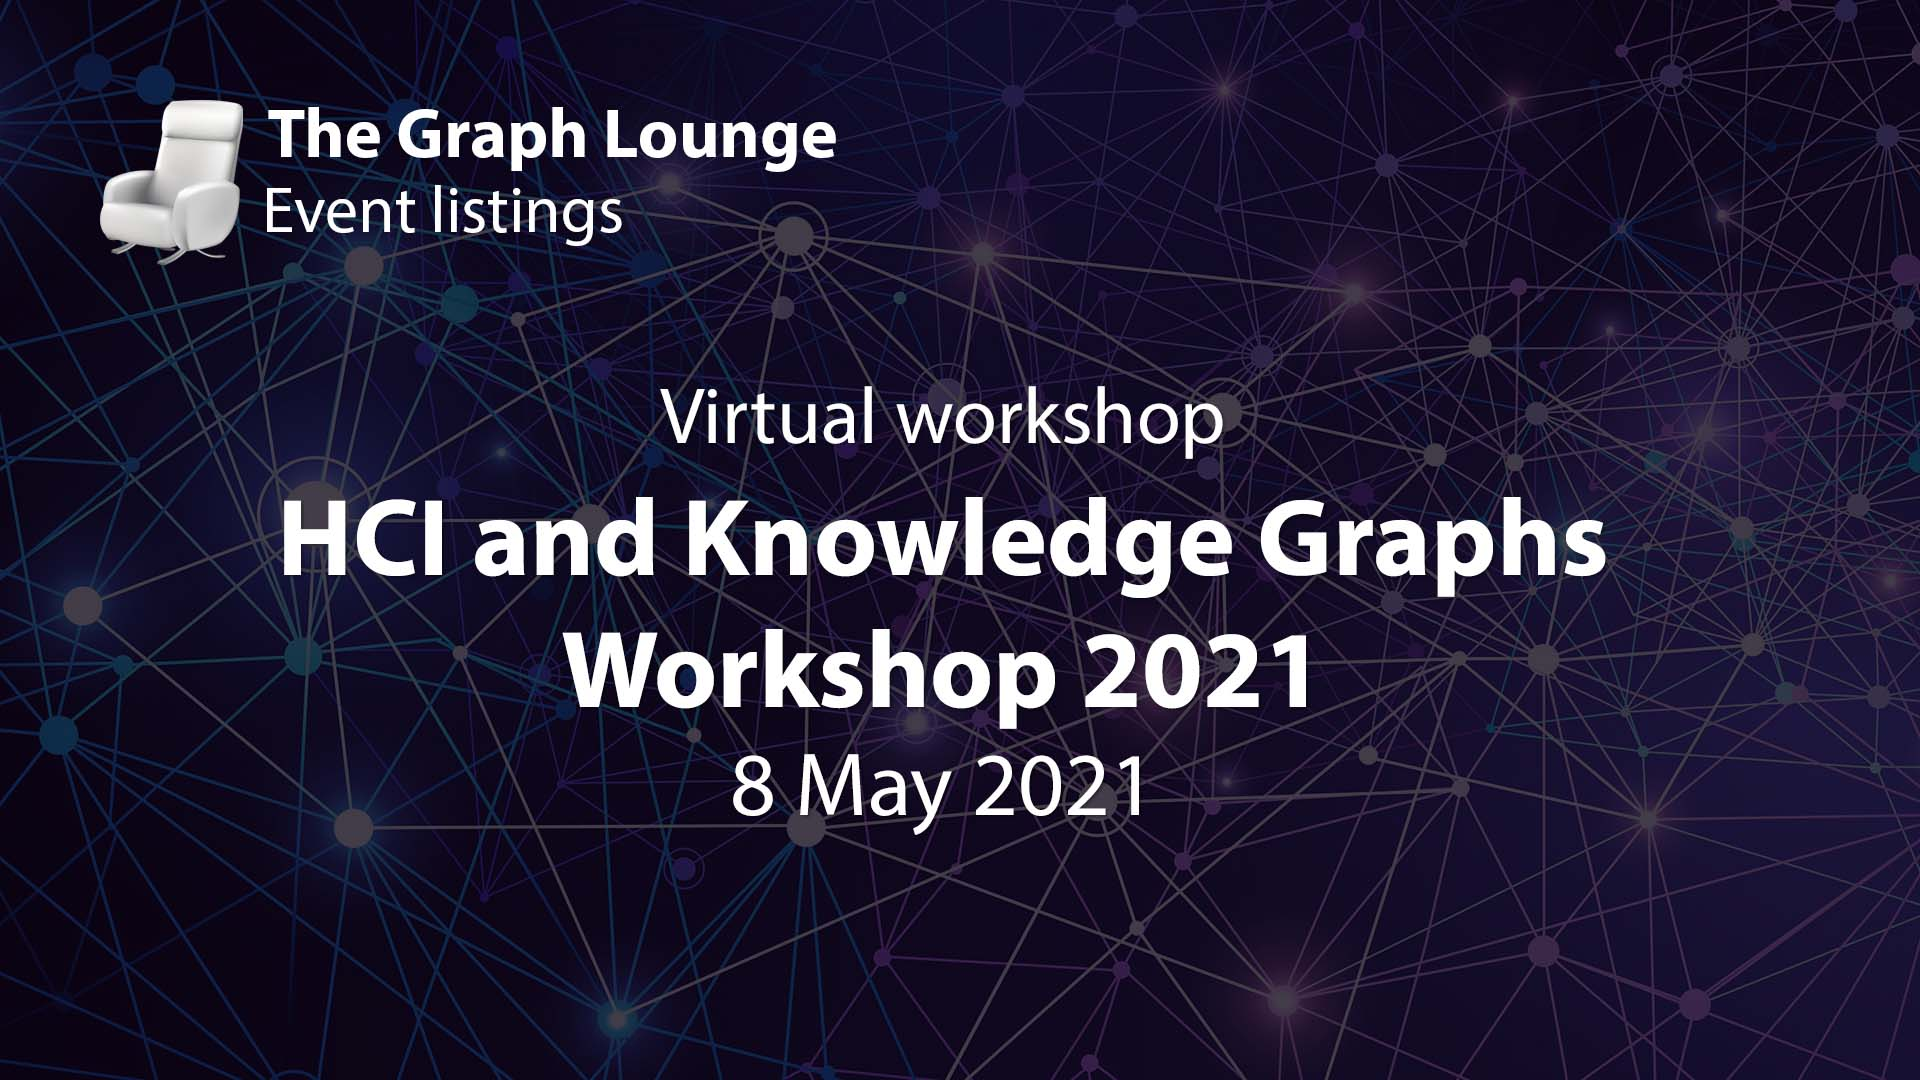 HCI (Human-Computer Interaction) and Knowledge Graphs Workshop 2021